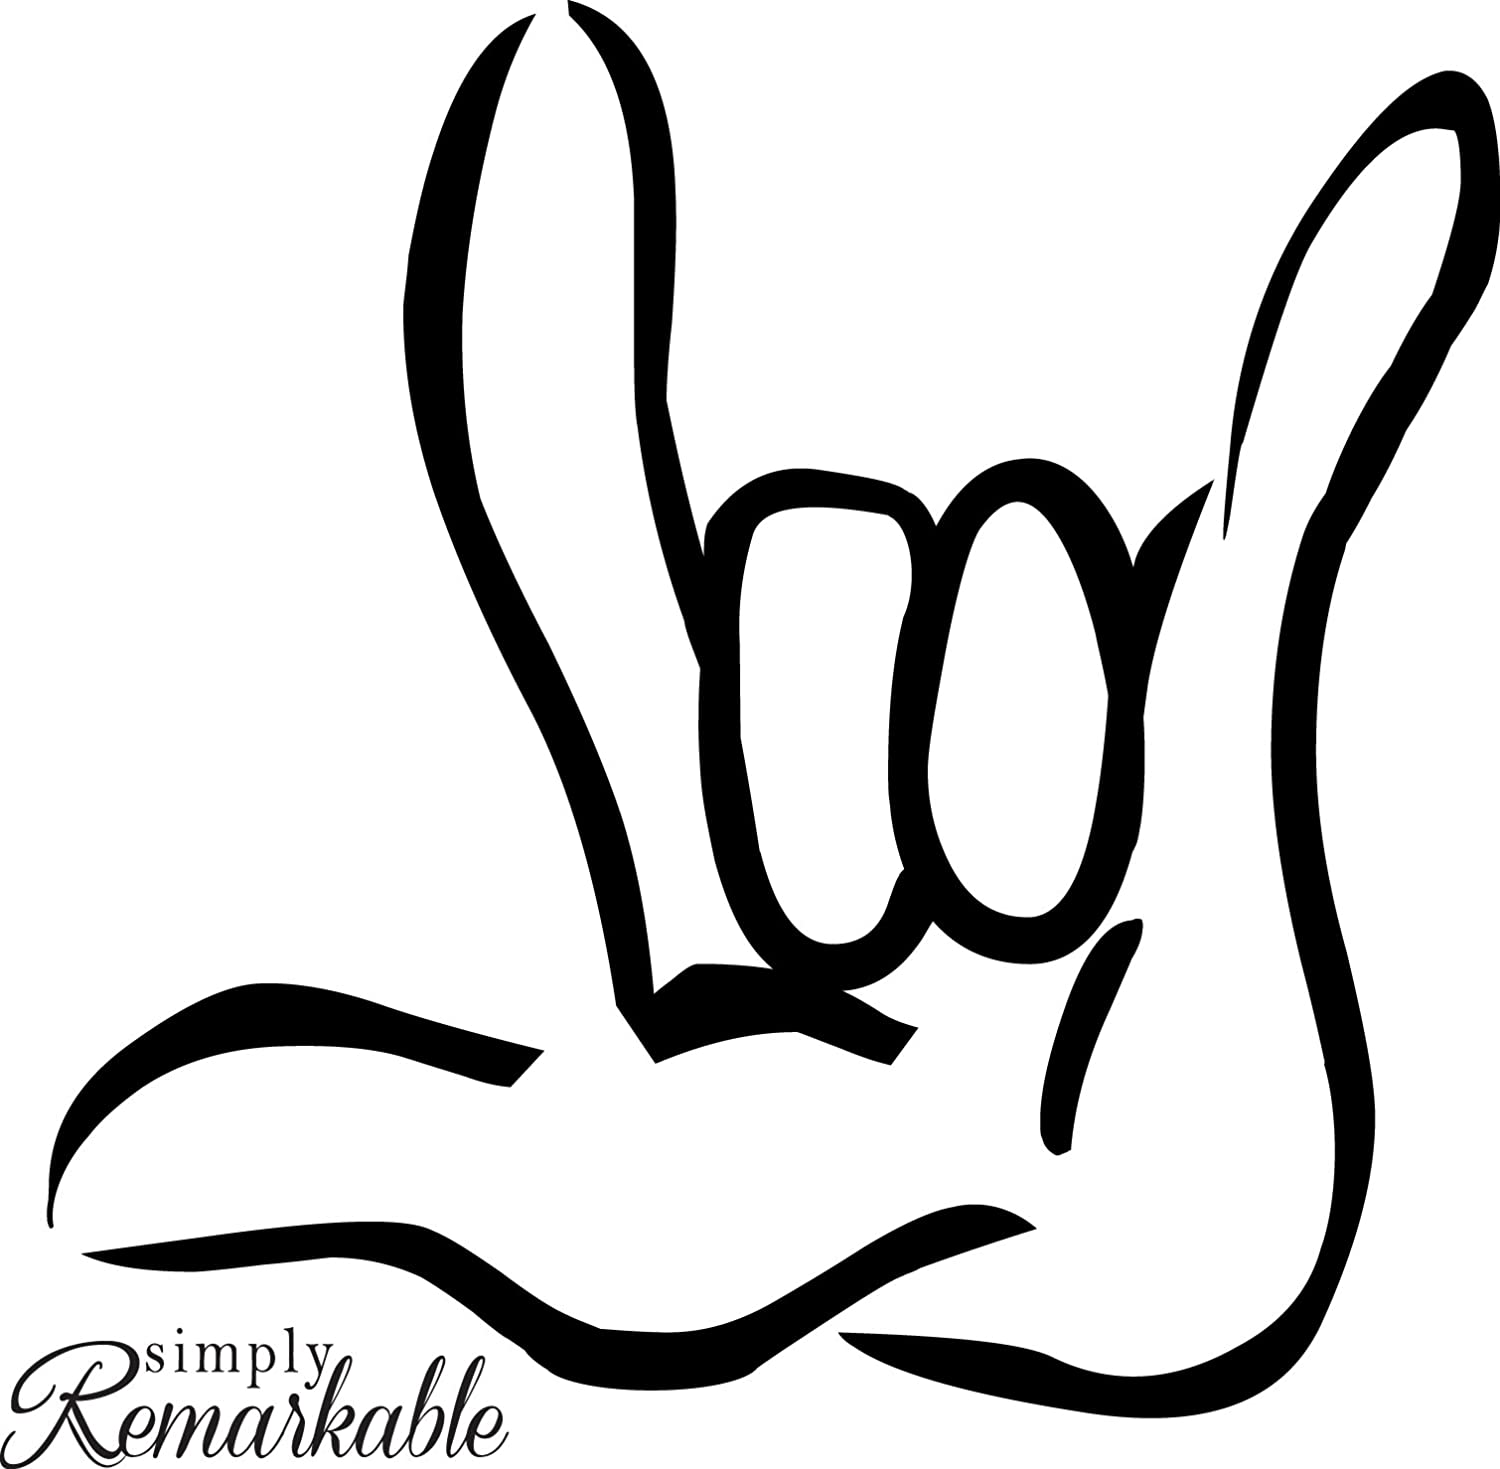 "Vinyl Decal Sticker for Computer Wall Car Mac Macbook and More Sign Language""I Love You"""